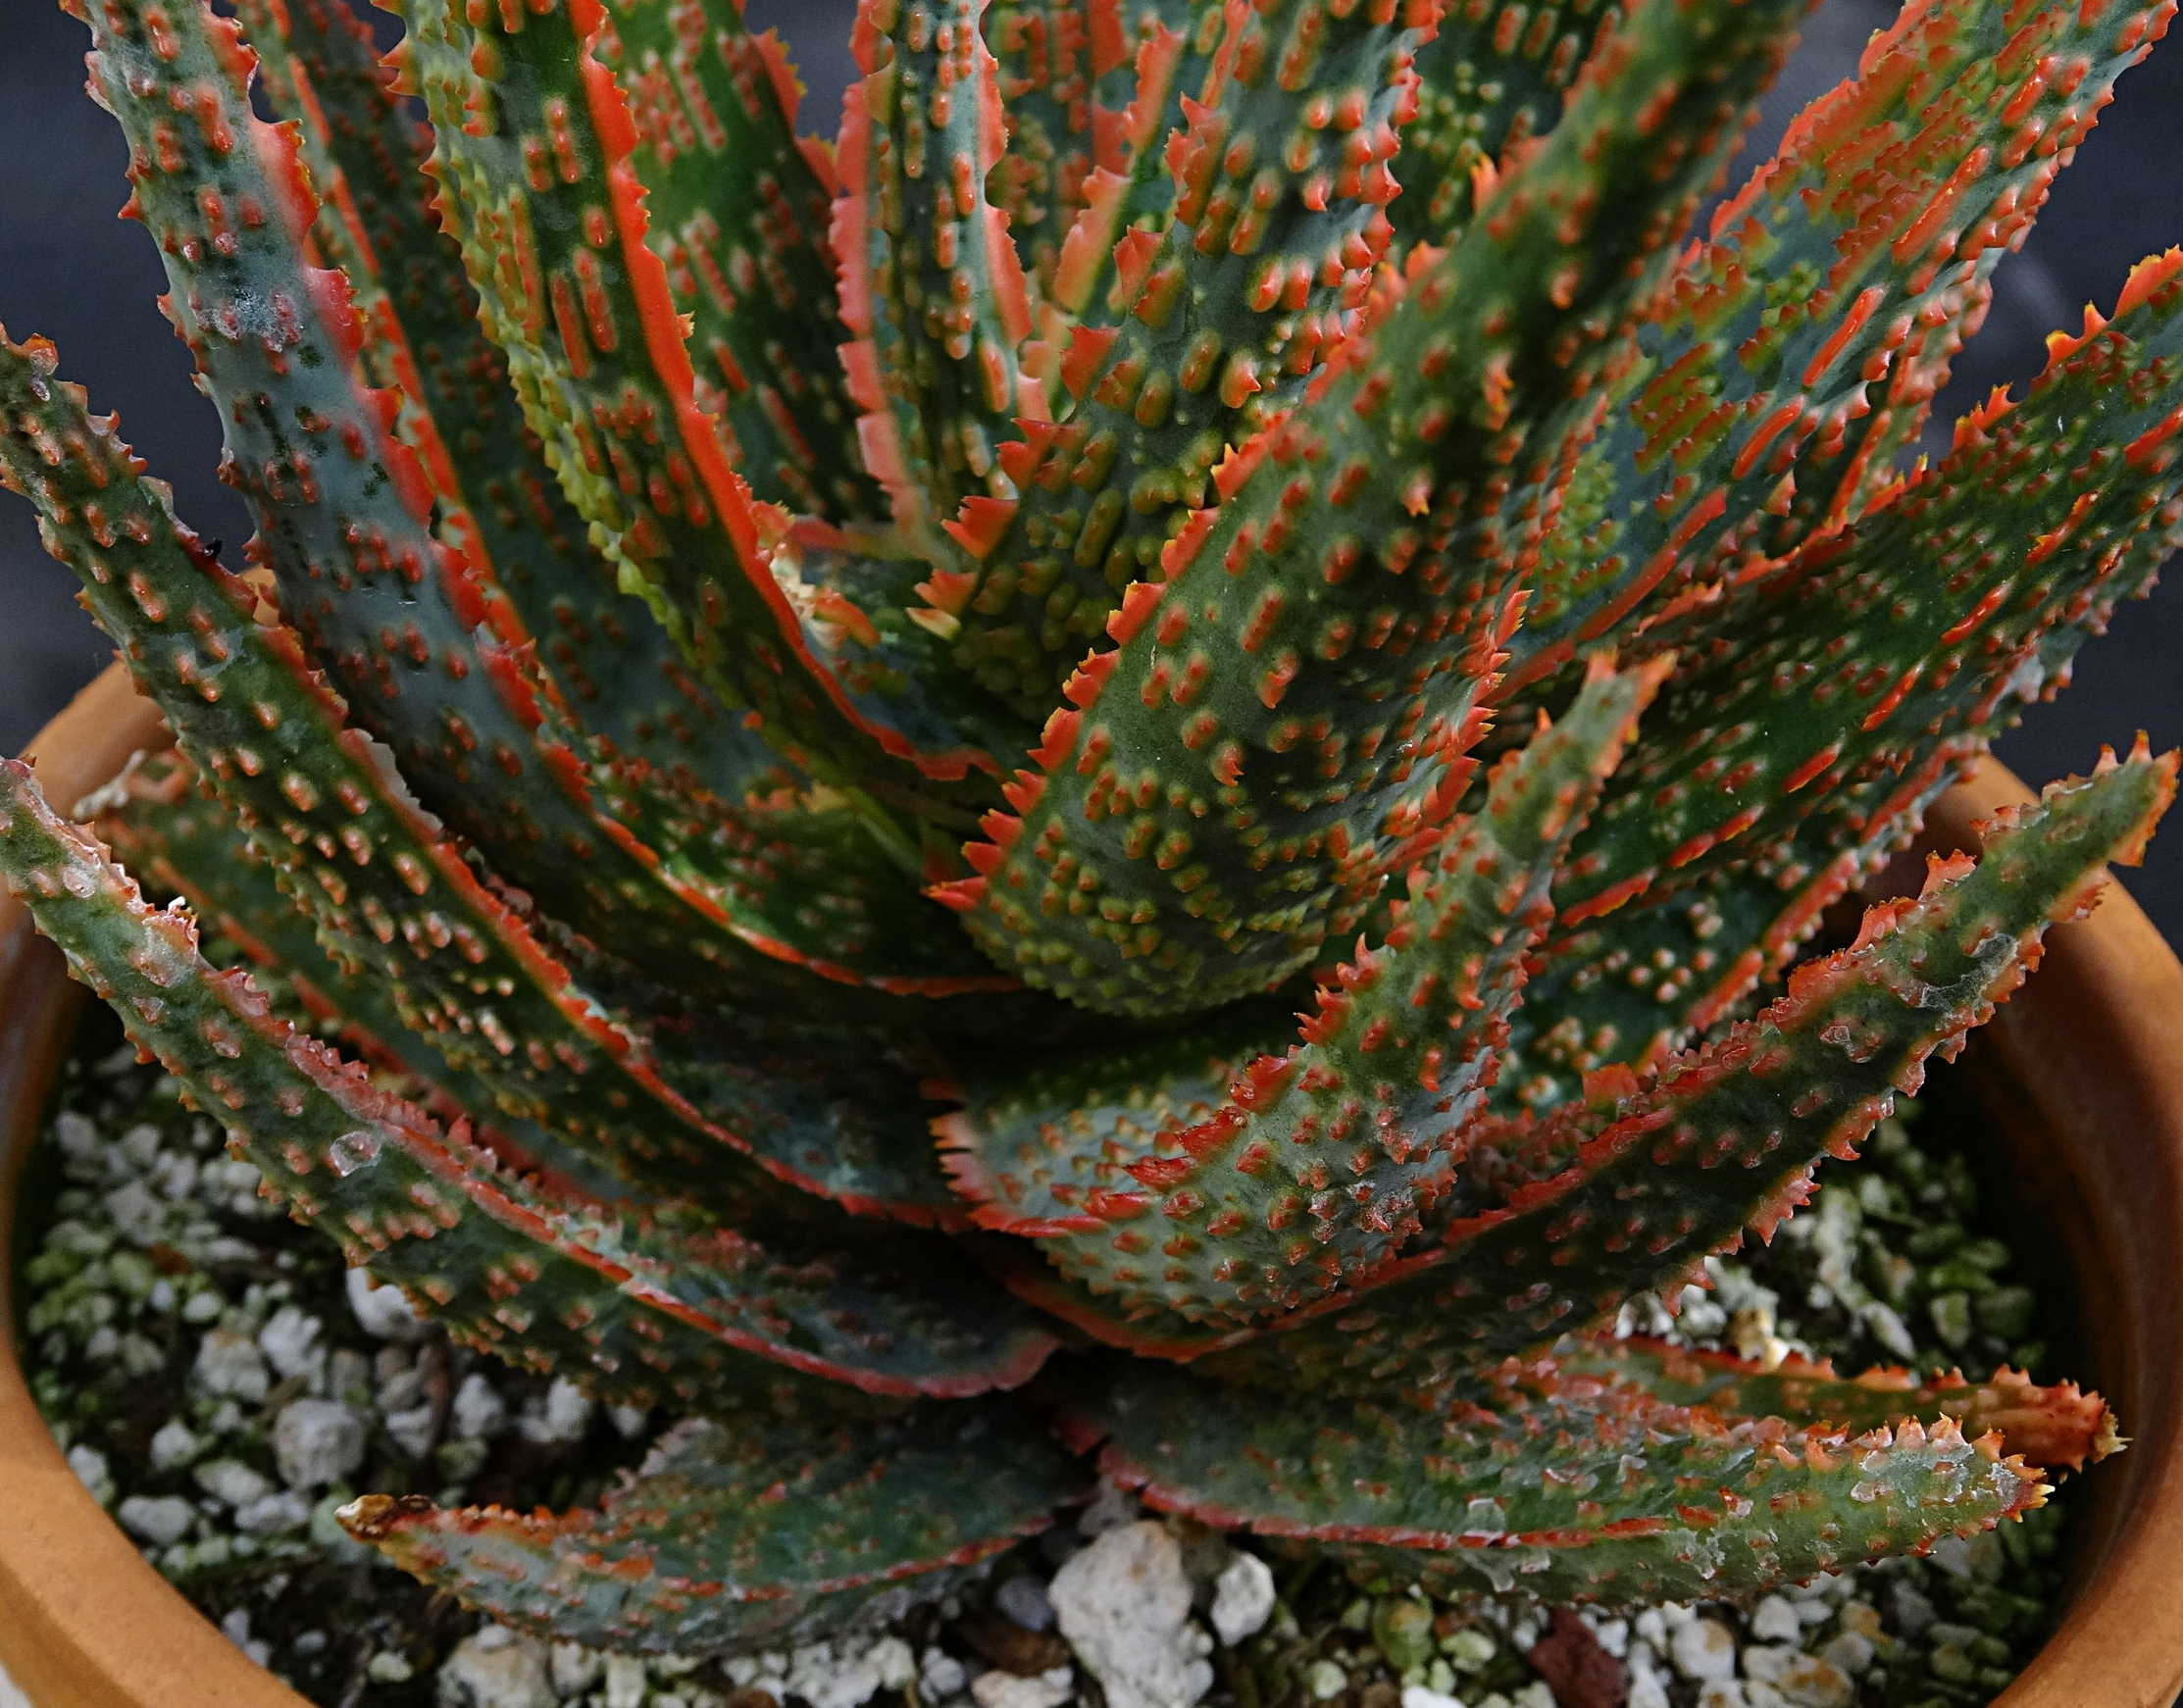 Aloe  cv. 'DZ' showing good rosette structure and basal leaf retention at several years of age.